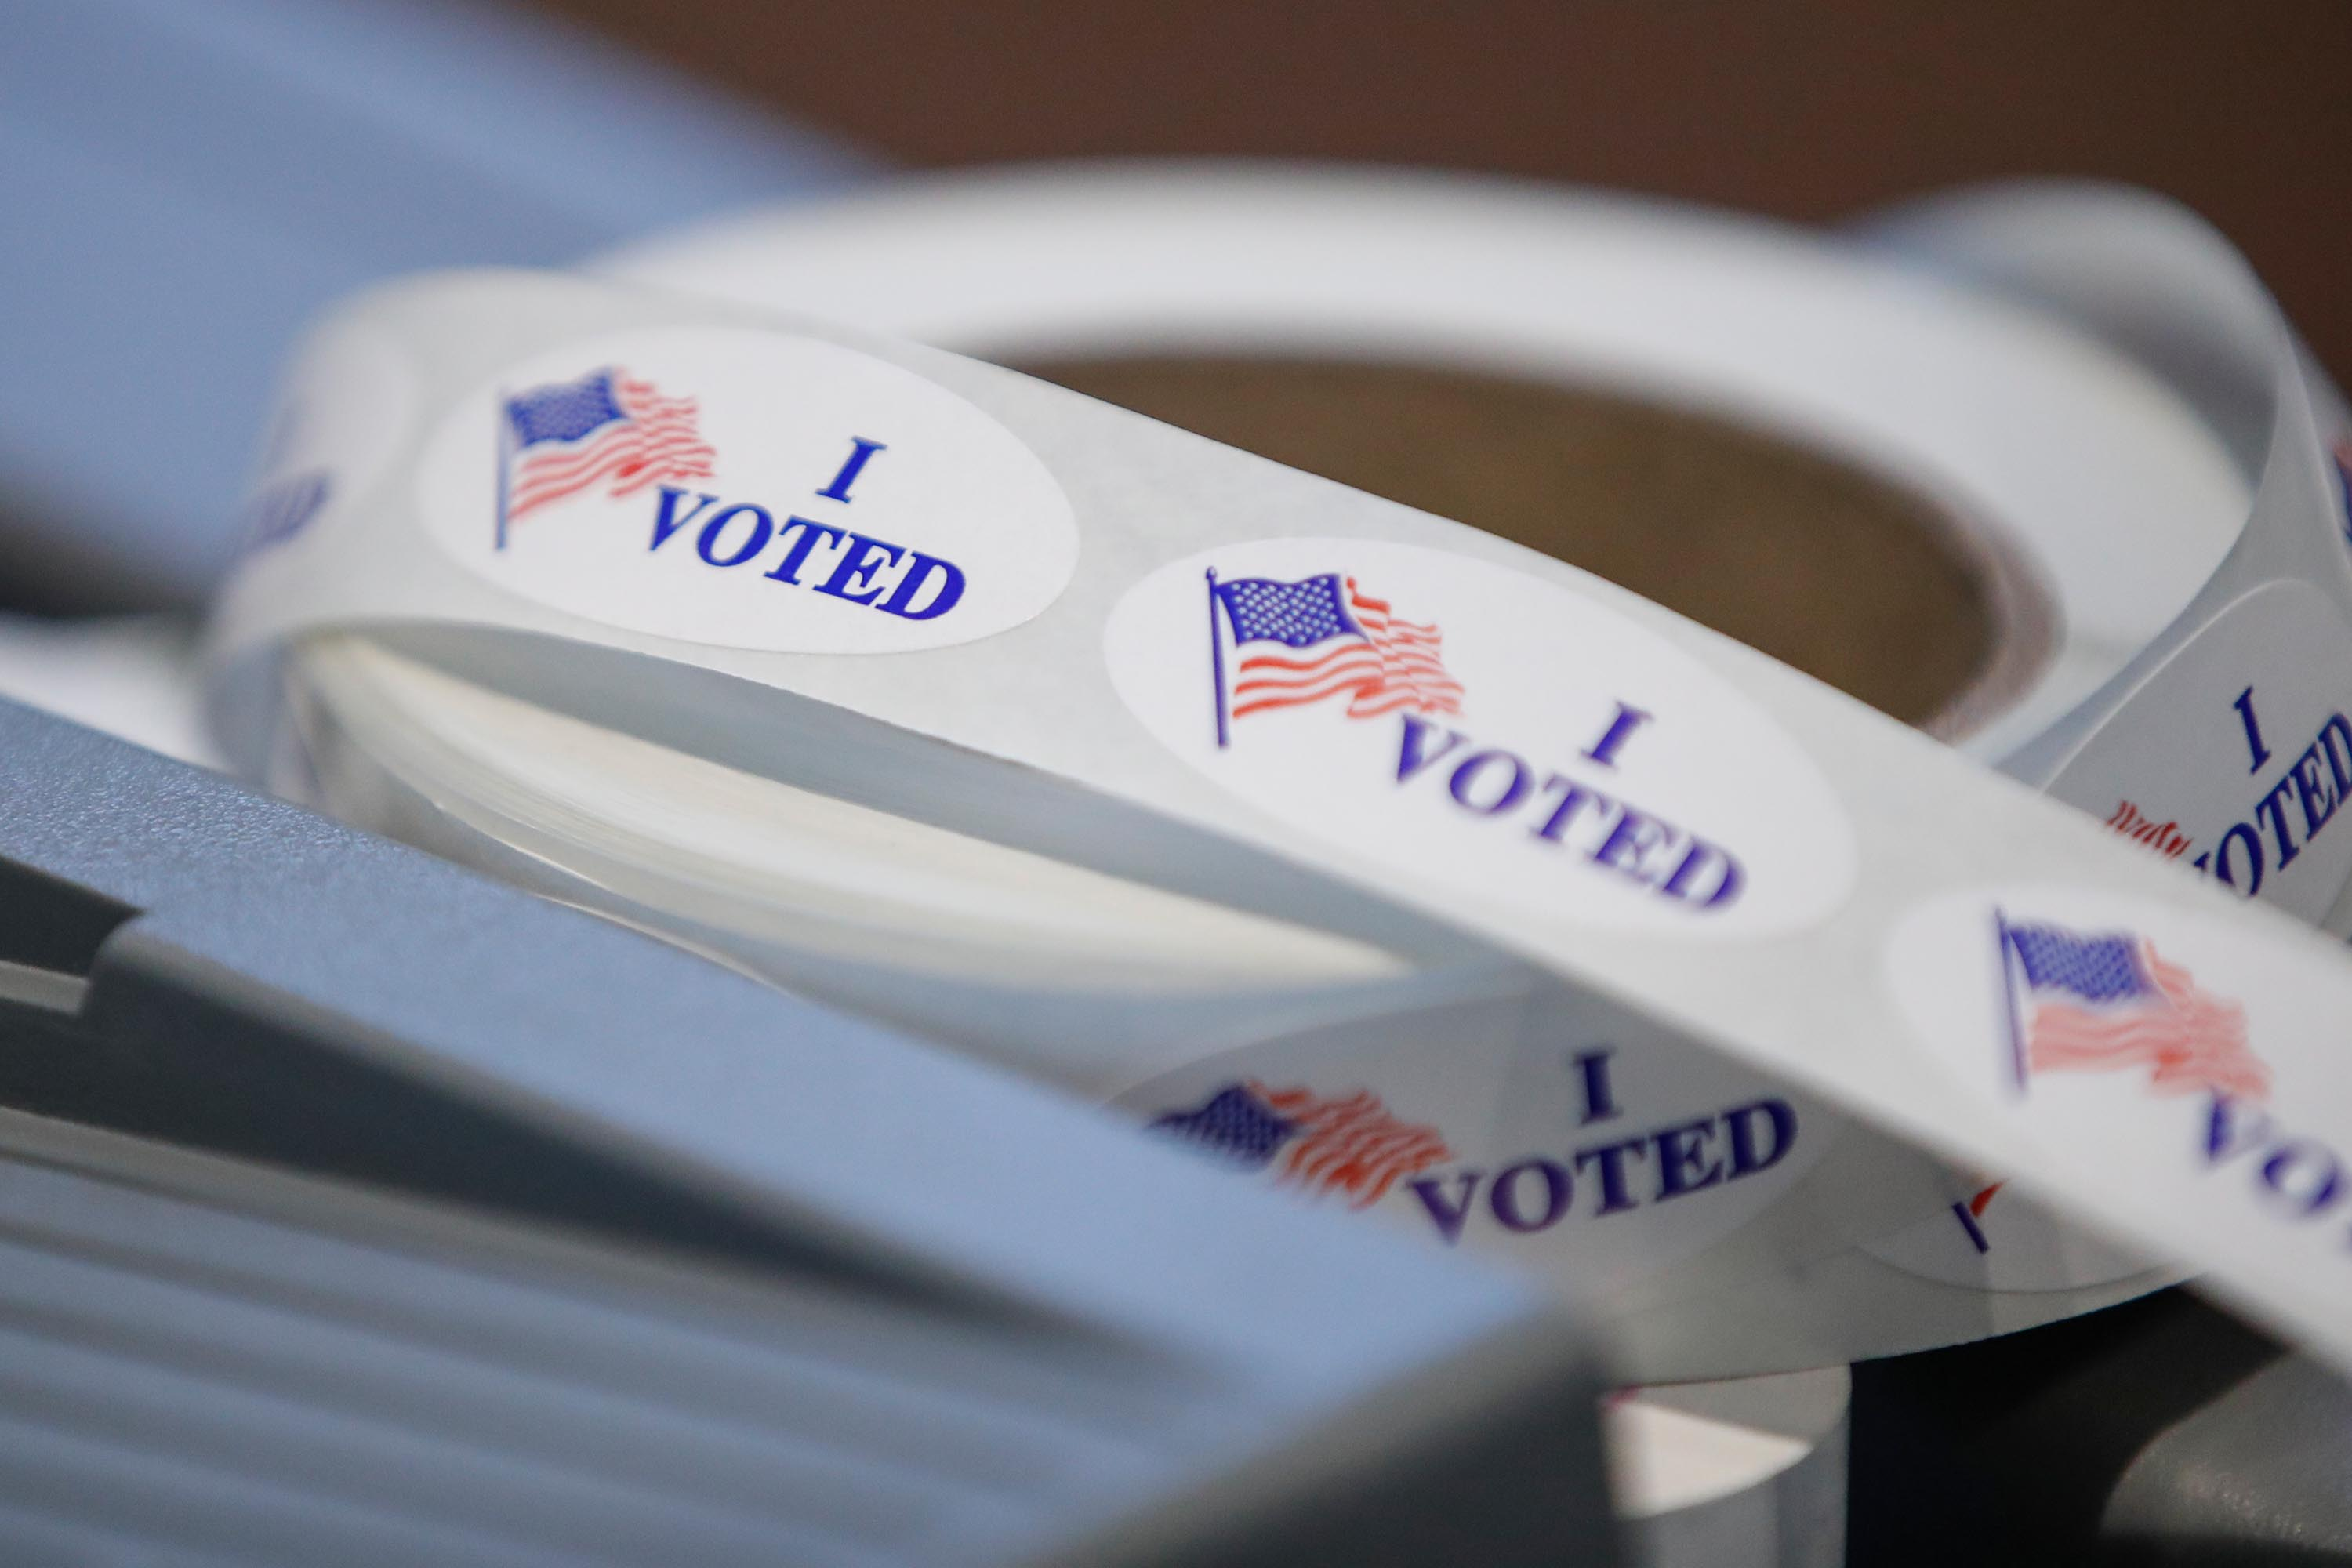 Judge orders Trump campaign to produce evidence of voter fraud in Pennsylvania